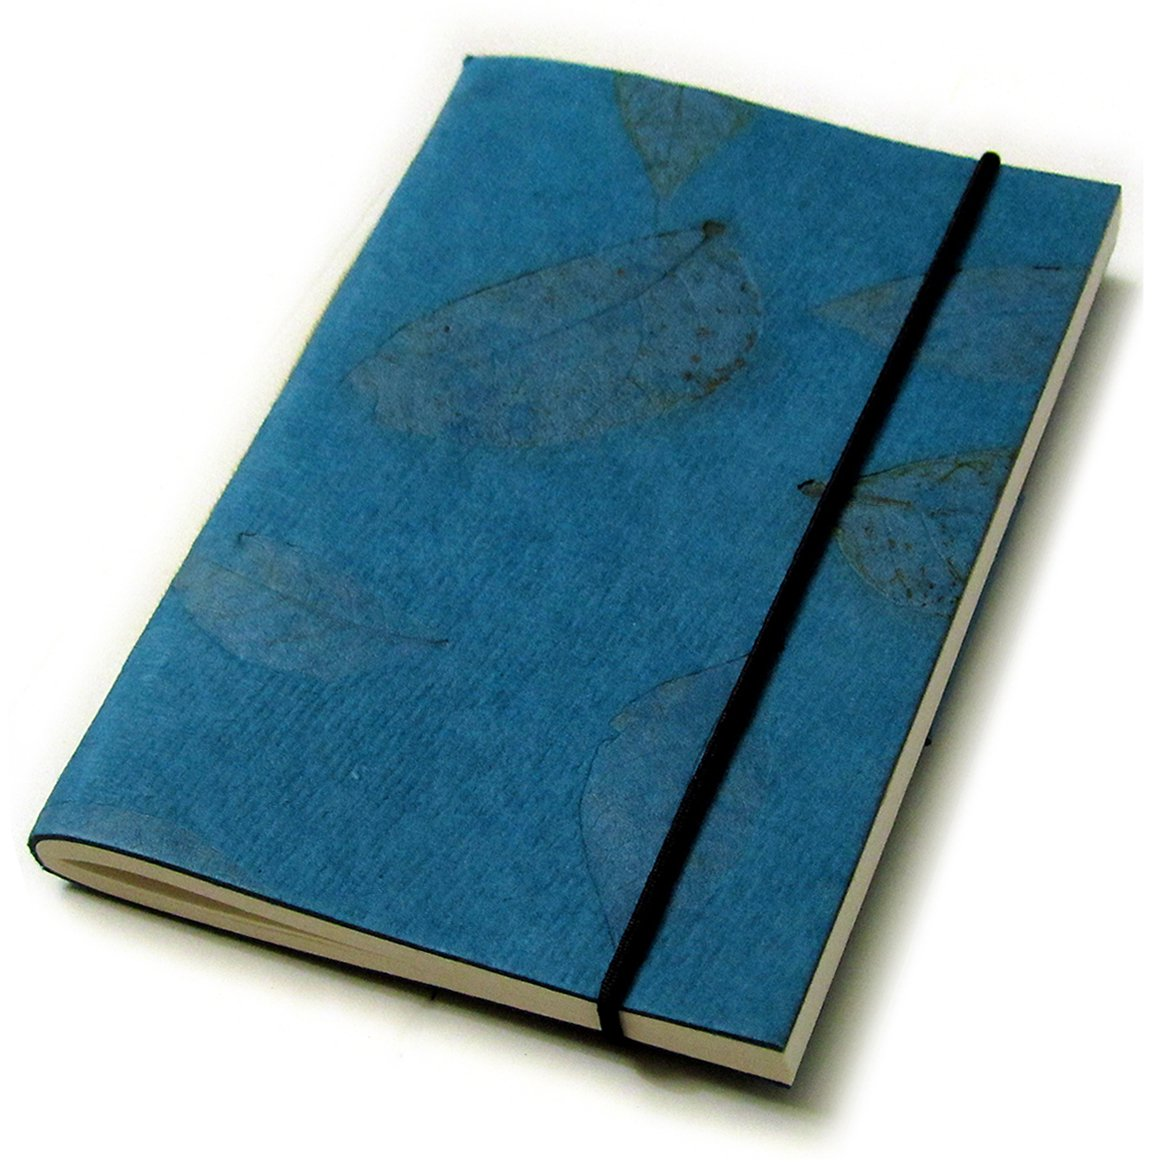 Handmade natural leaf paper stationery notebooks 3x5 40pp blank journal teal recycled